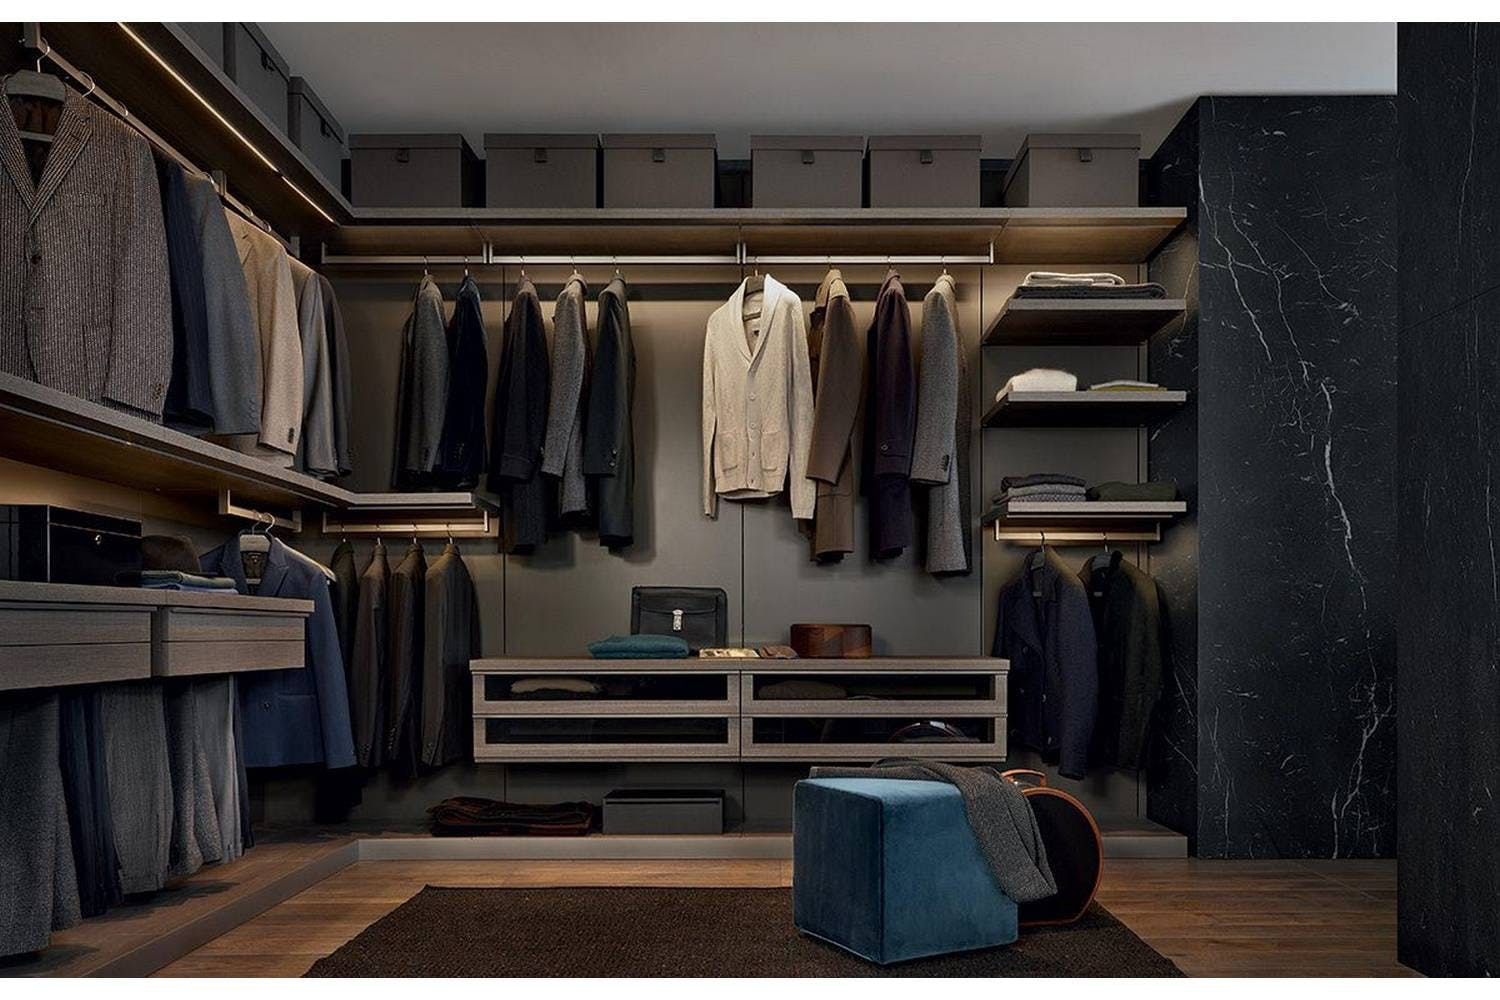 Ubik Walk-In Closet by CR&S Poliform for Poliform